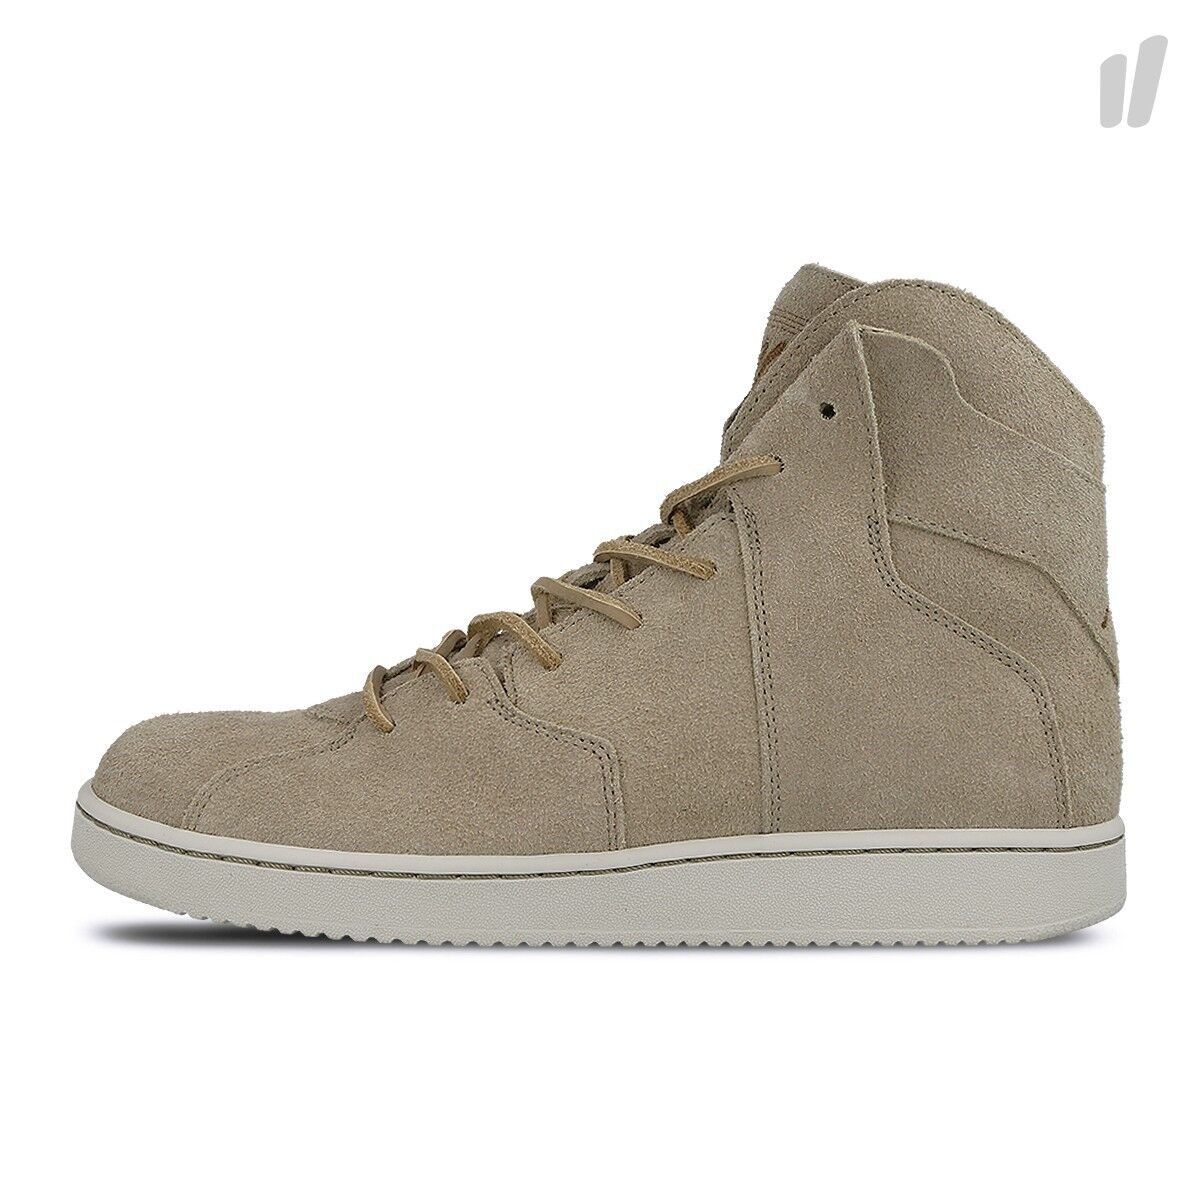 NIKE JORDAN WESTBROOK 0.2 Suede Trainers Boots Fashion Hi Top () Khaki